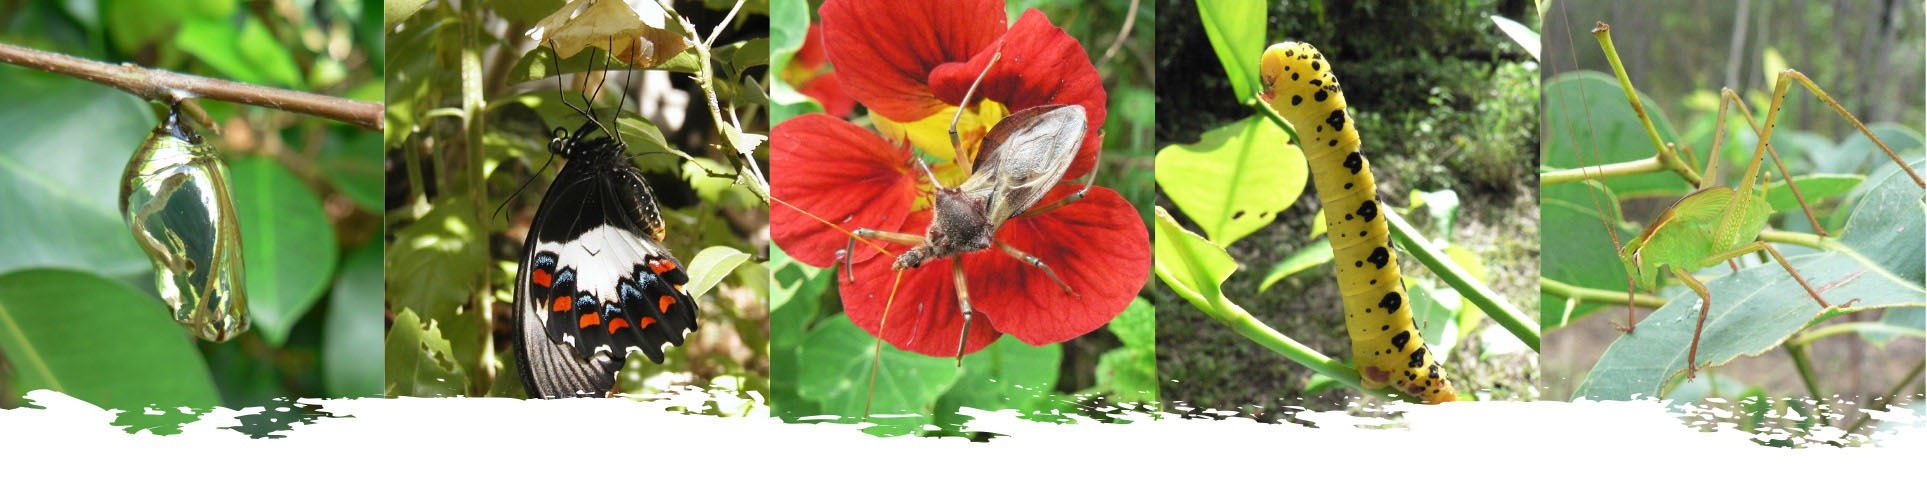 insect-photo-strip